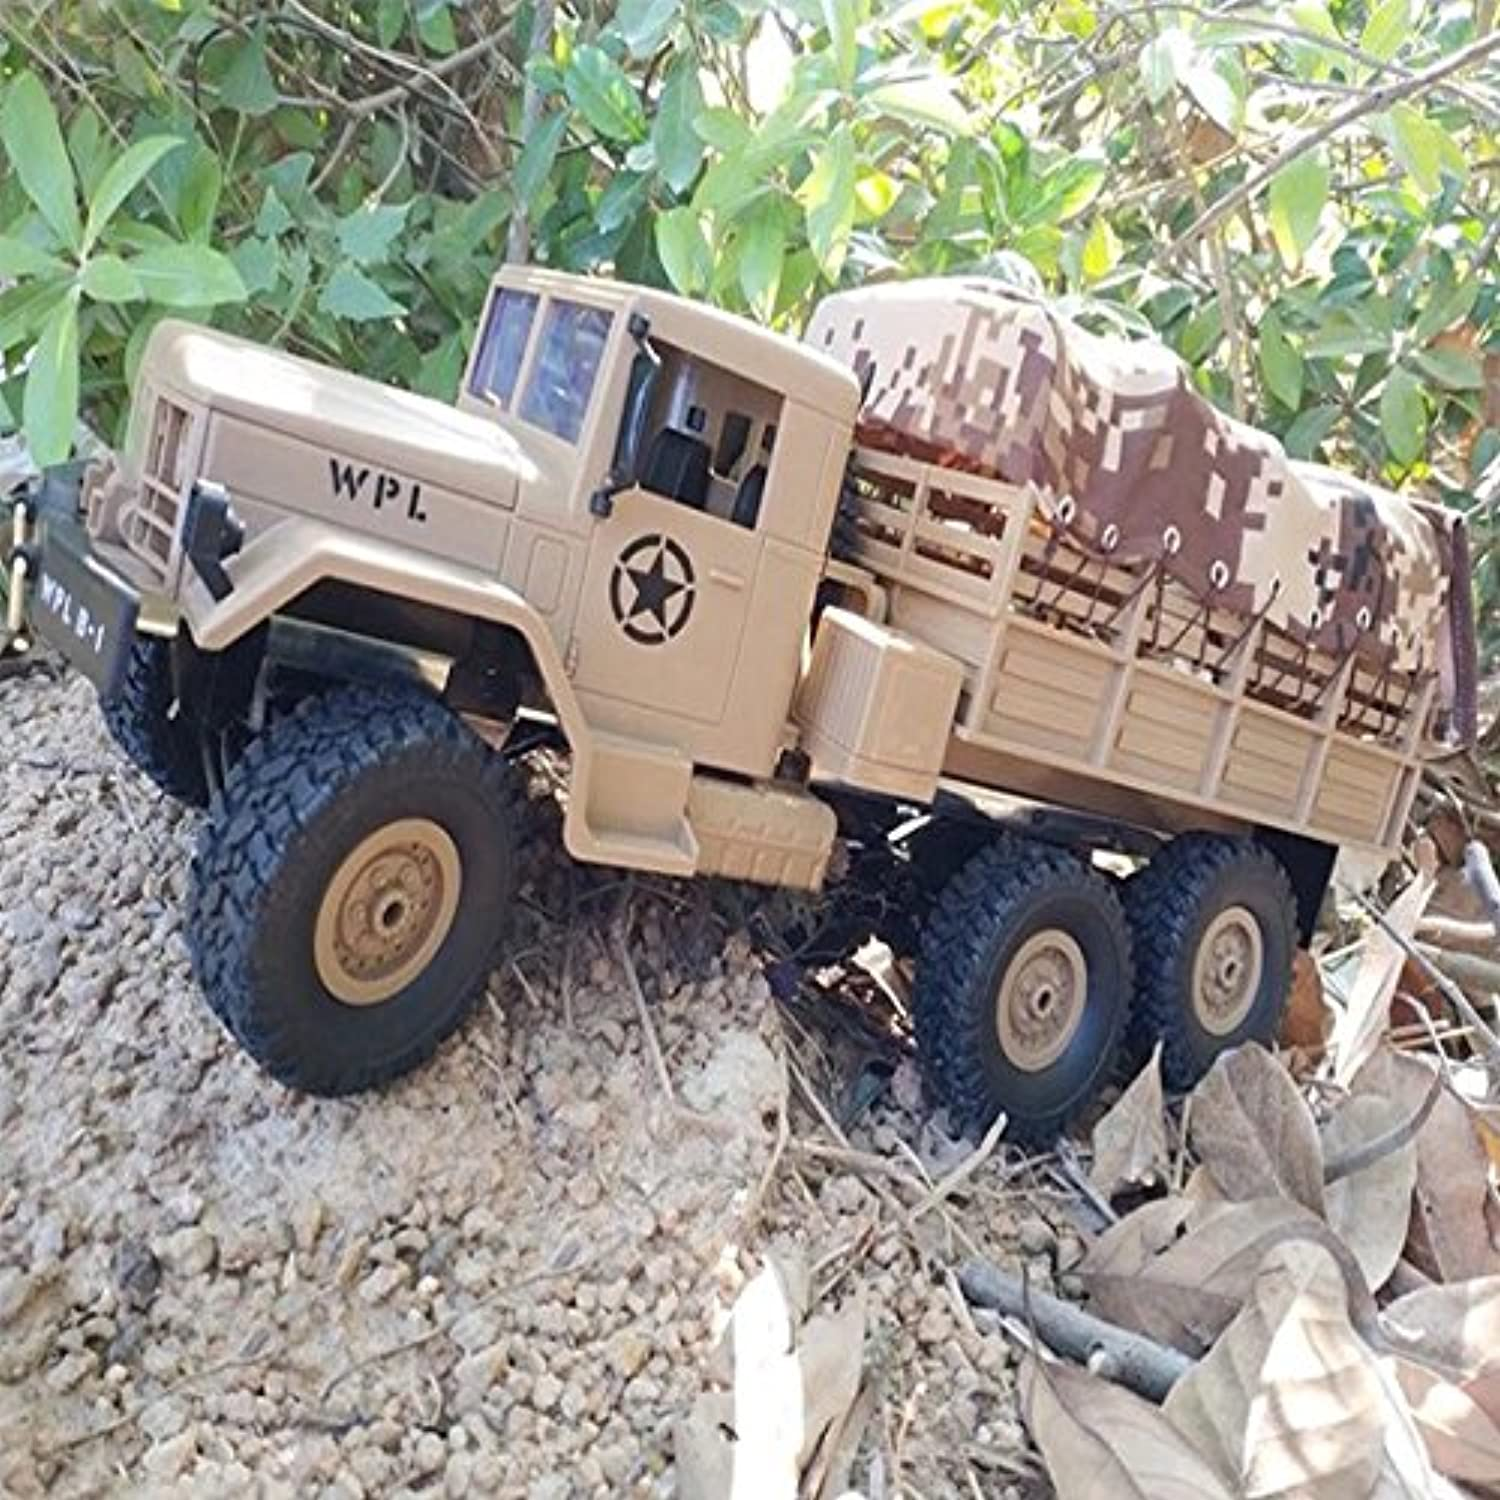 Ocamo 2.4G Remote Control Military Truck 6 Wheel Drive OffRoad RC Car Model Climbing Car Gift Toy Desert Yellow car with color Box